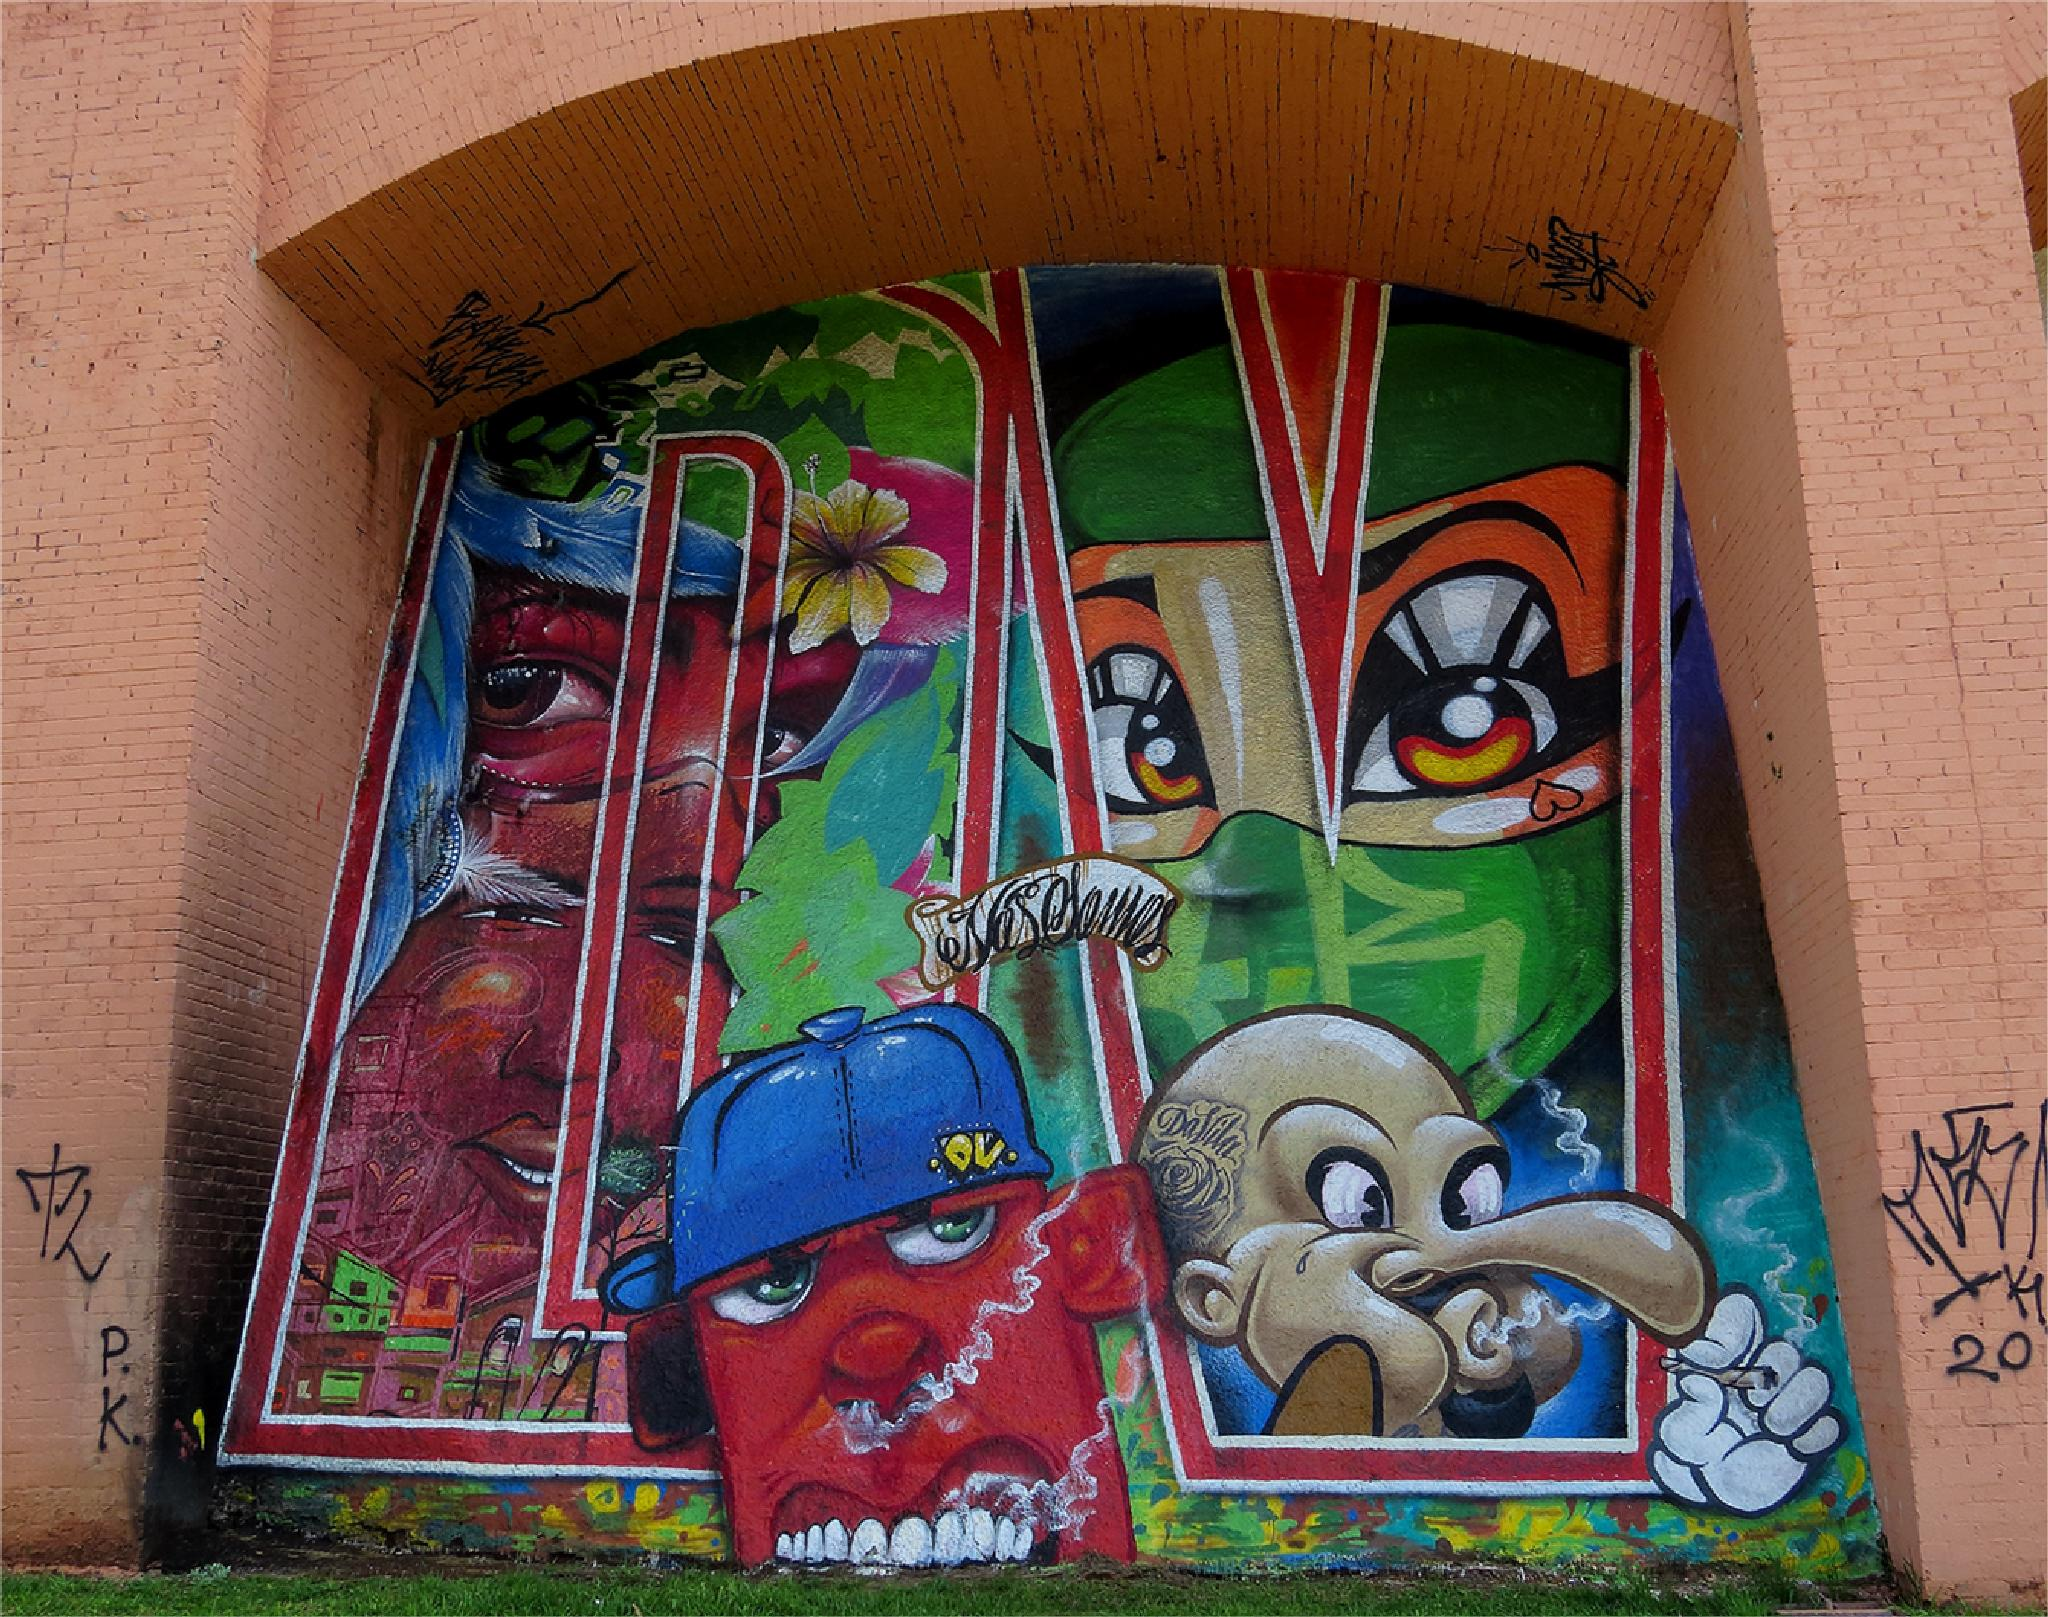 Graffiti by LuixCelso